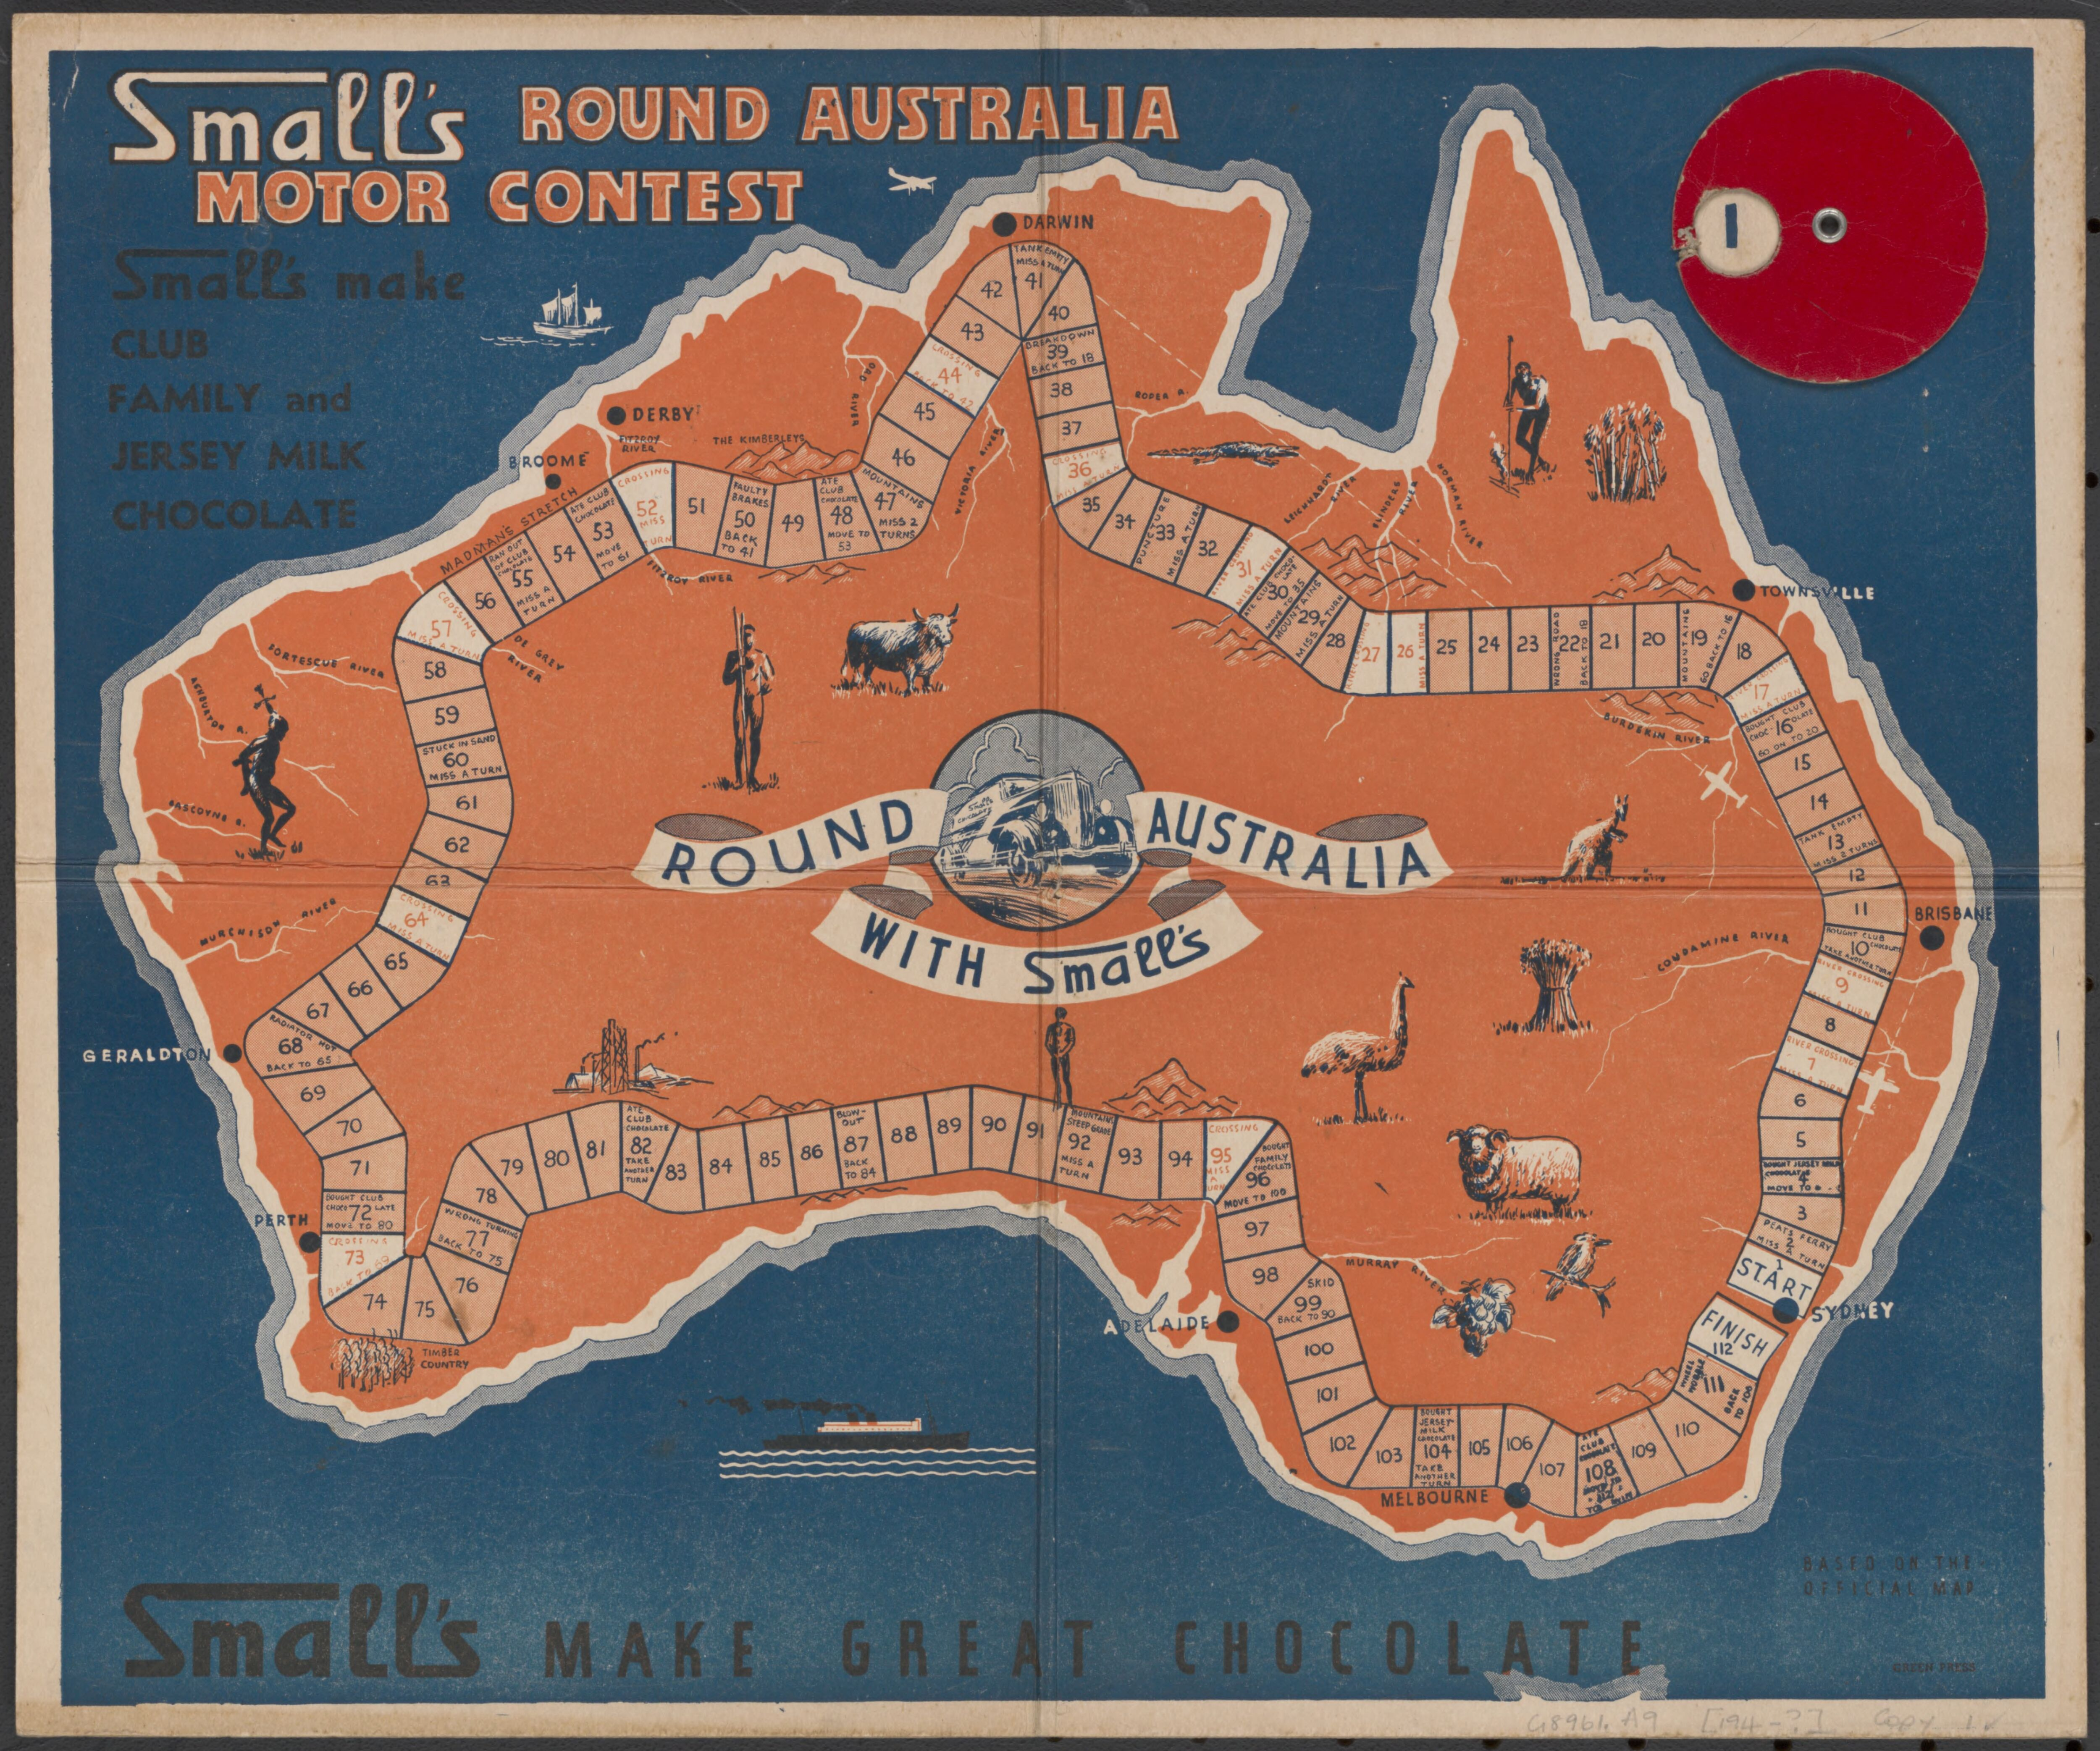 smalls round australia motor contest board game map of australia